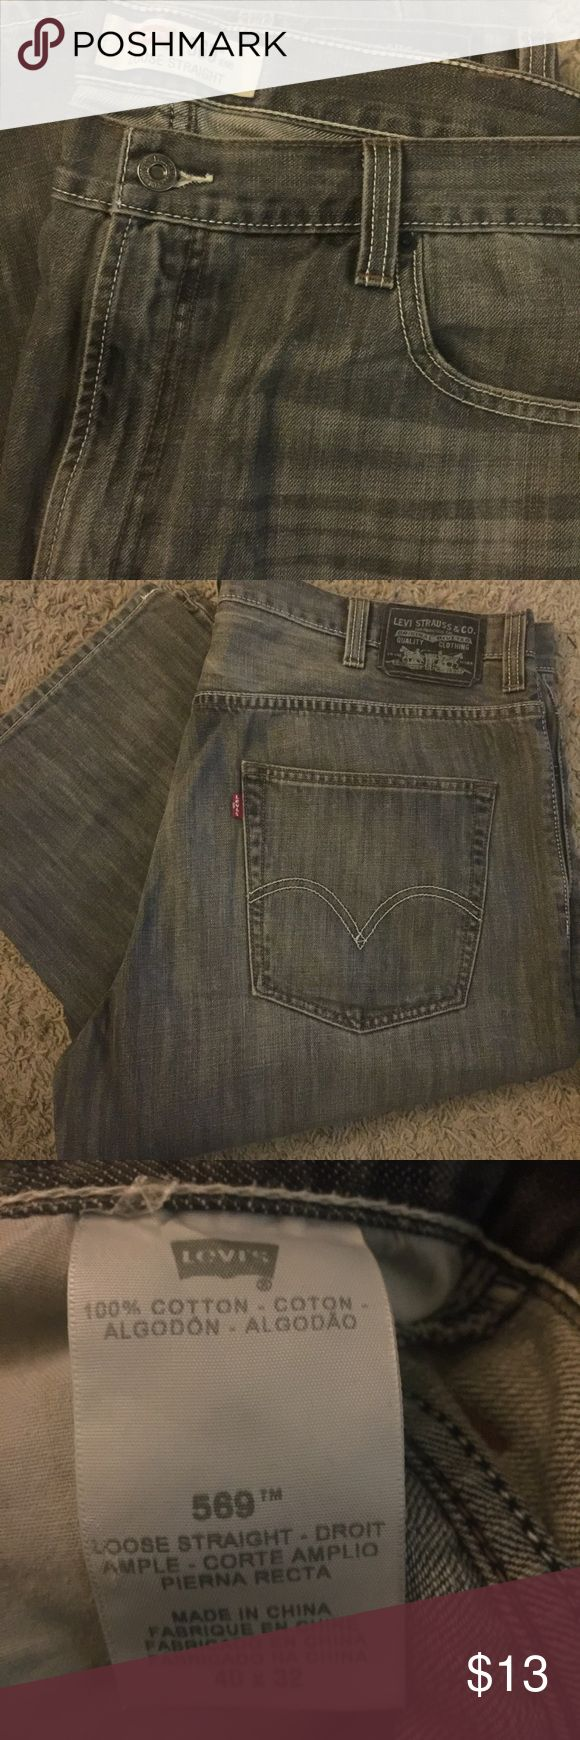 Men's Levi's 569 Gray Jeans / Size 40x32 Finally convinced my husband to clean out his closet & found some great pre-loved stuff. These items all still have tons of life left in them for the man in your life! These are very nice Levi's 569 jeans in a gray wash (no holes, rips or stains). Very soft denim. These are in VGUC / Size 40x32 Levi's Jeans